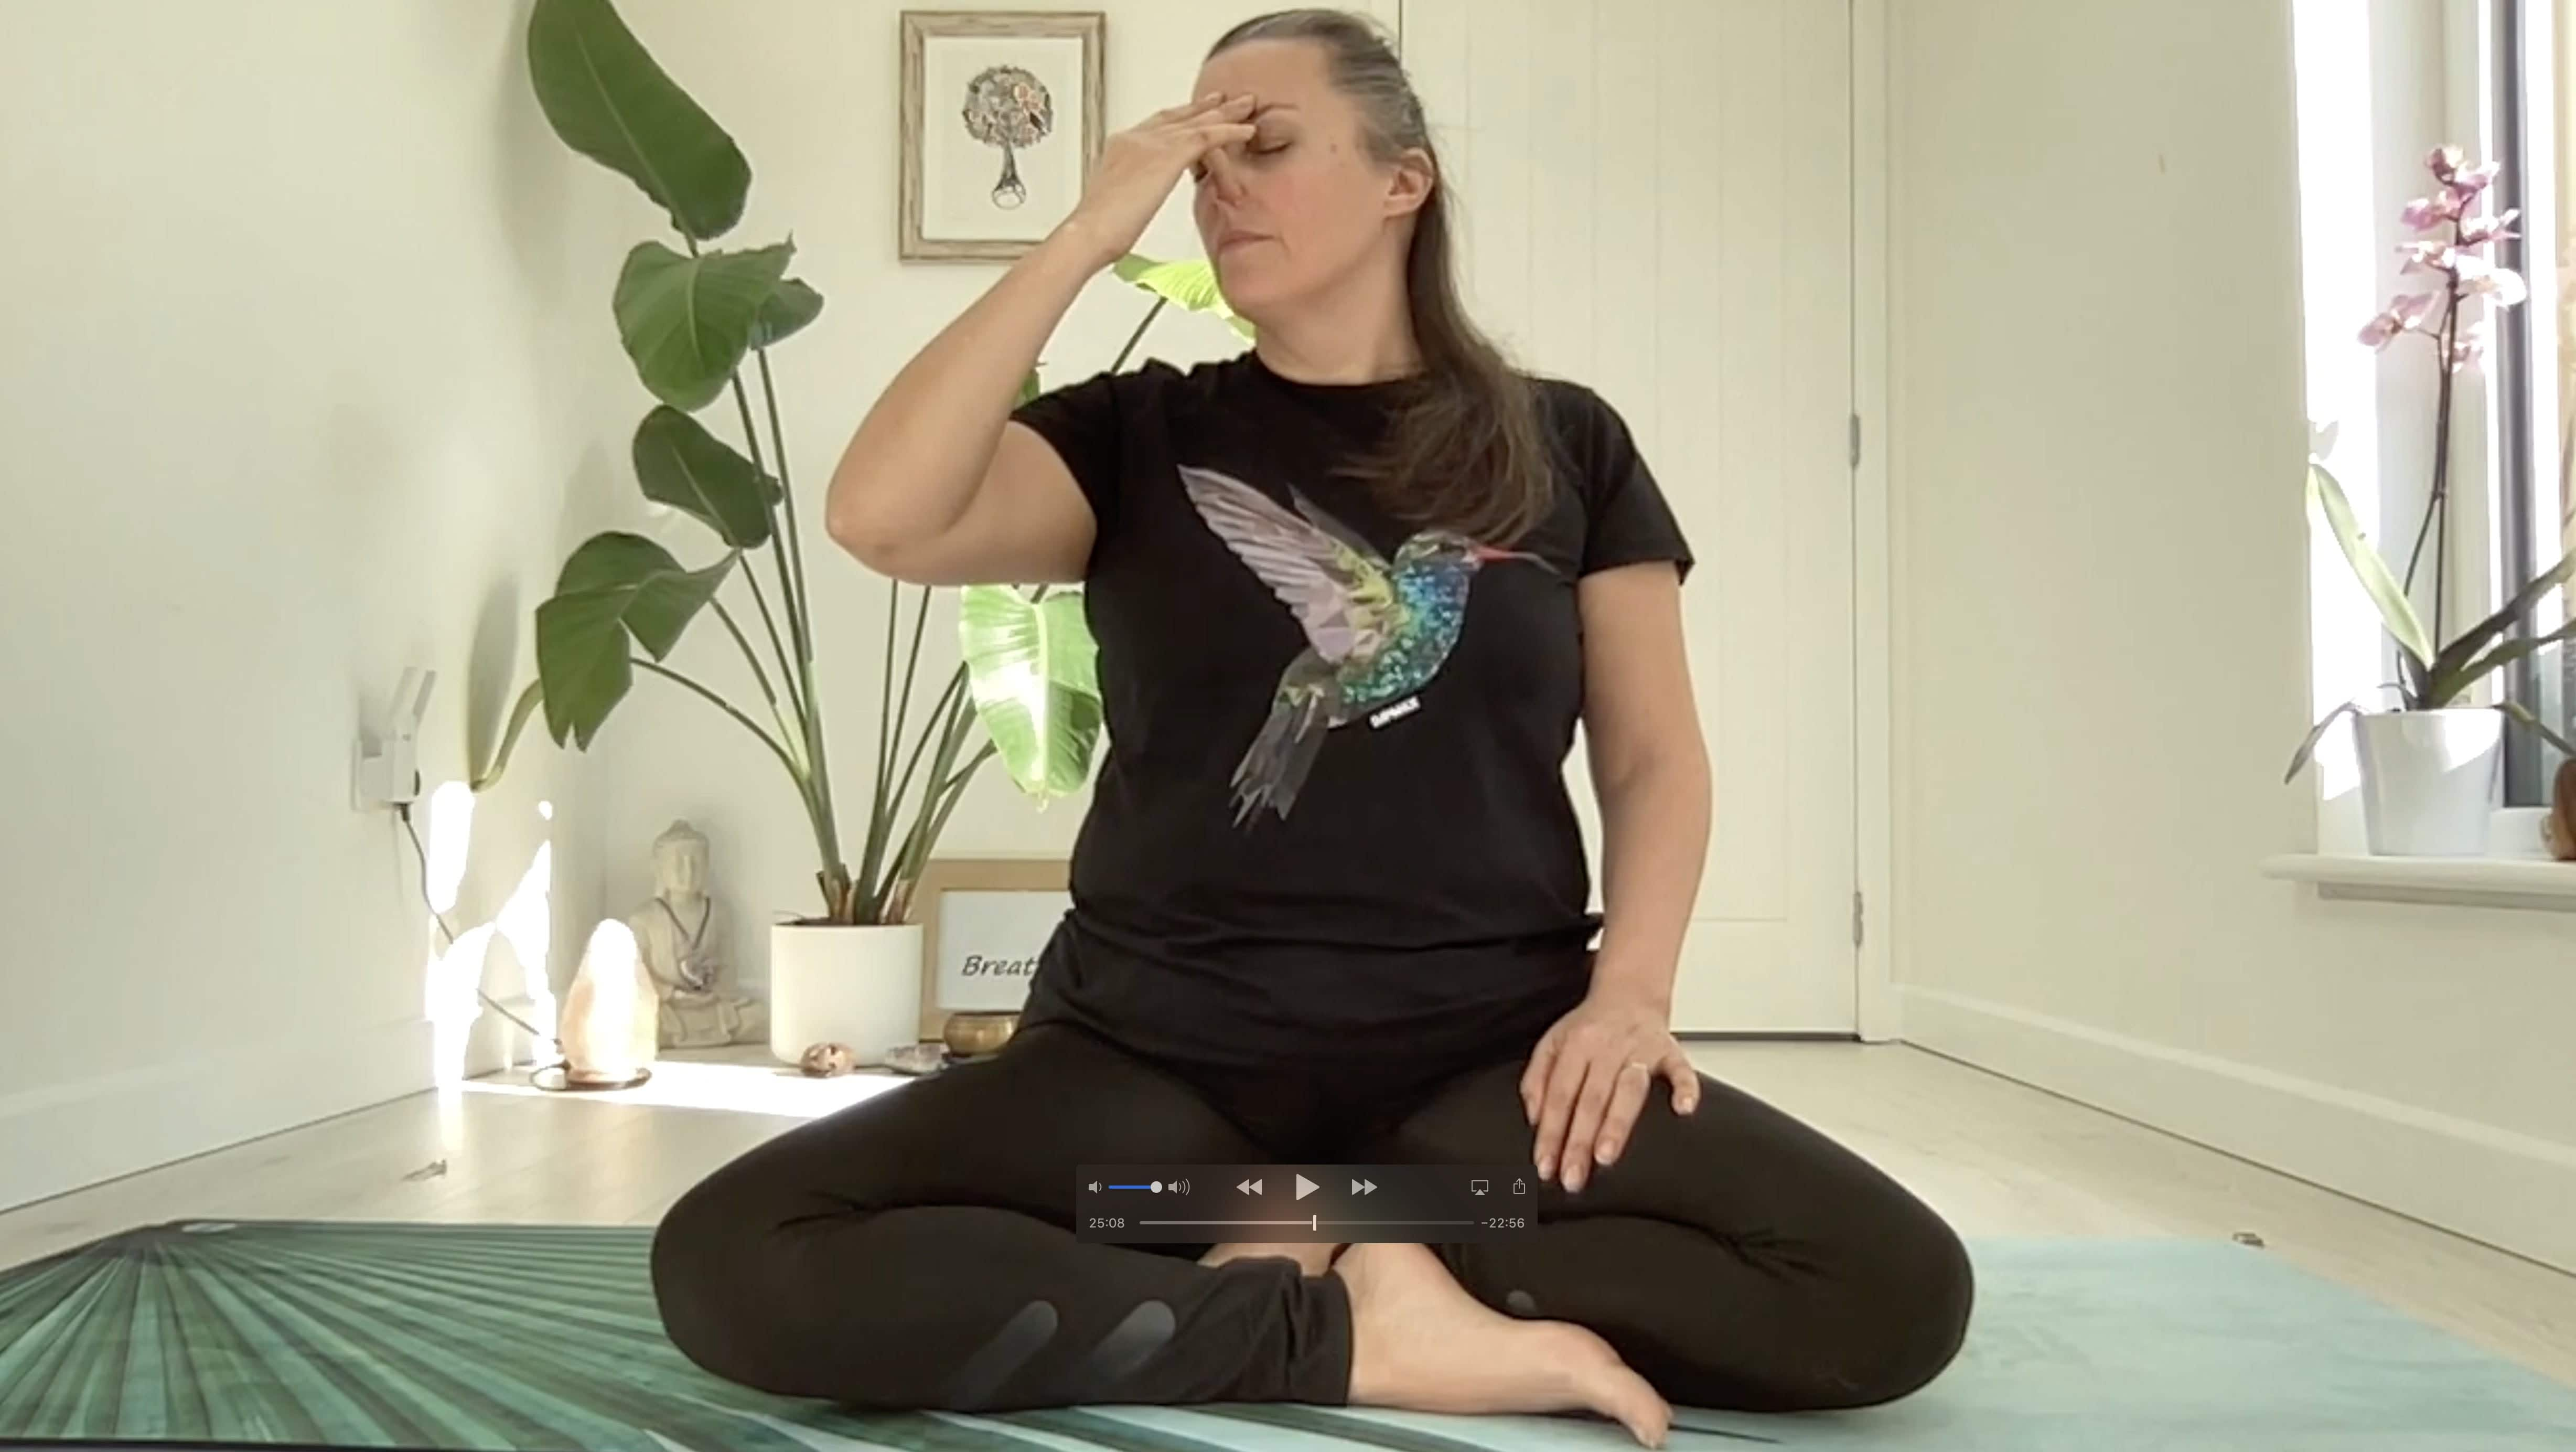 Once you learn to tune into more functional breathing patterns and use the power of your breath, you'll be able to access this powerful tool whenever... and wherever... you need to.